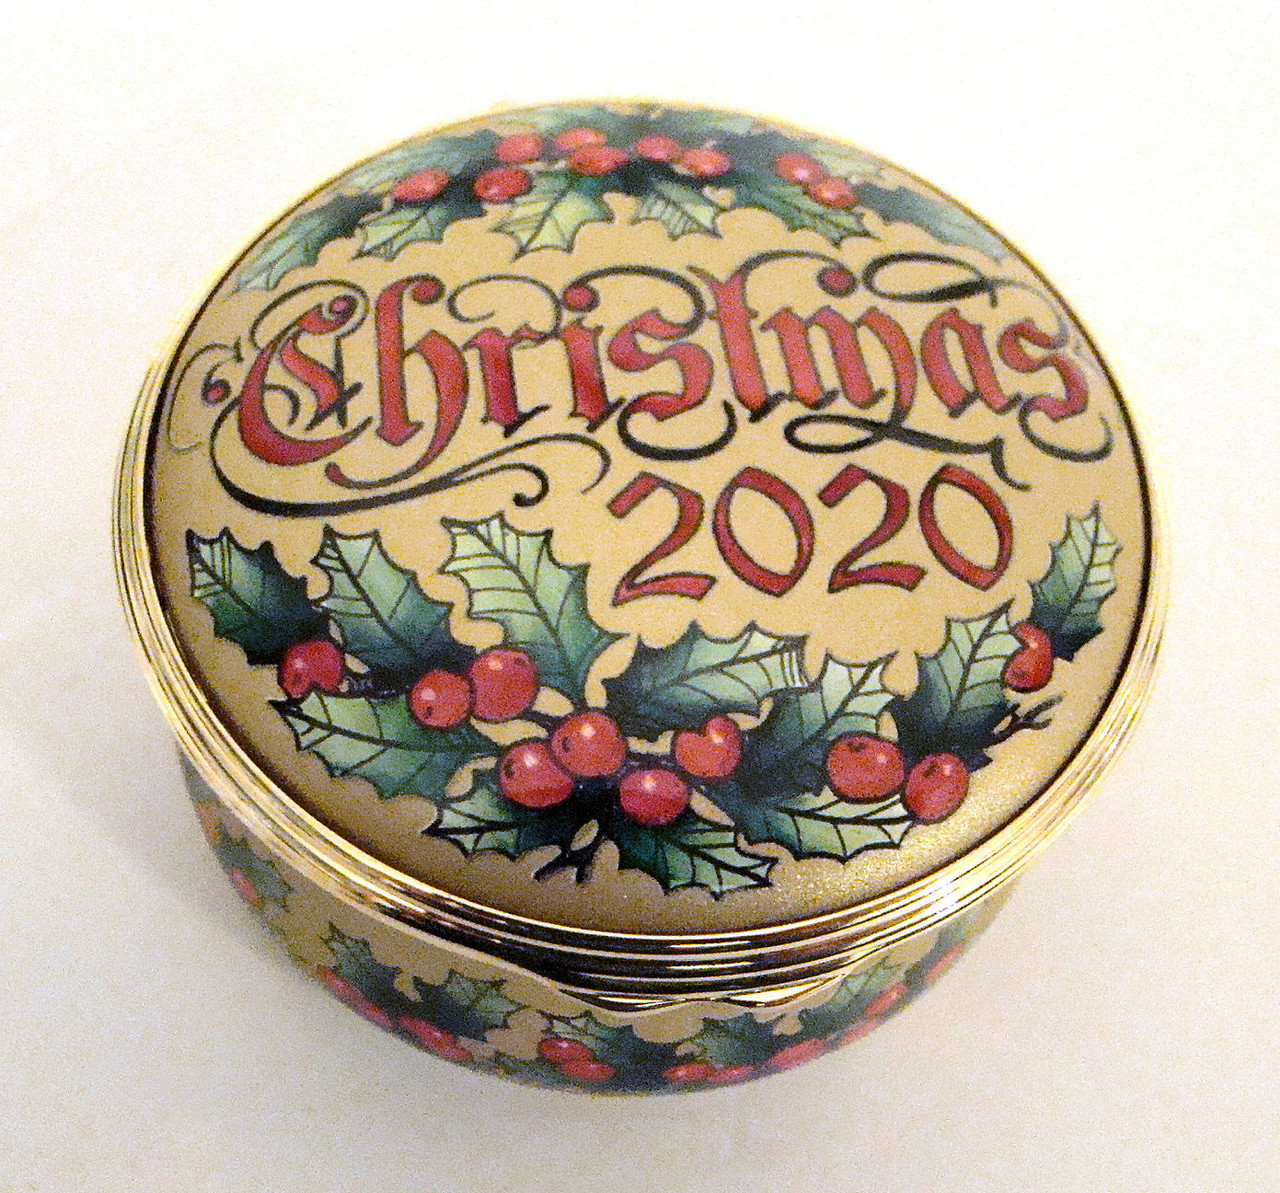 Halcyon Days 2020 LIMITED EDITION Christmas Box ENCH200133G